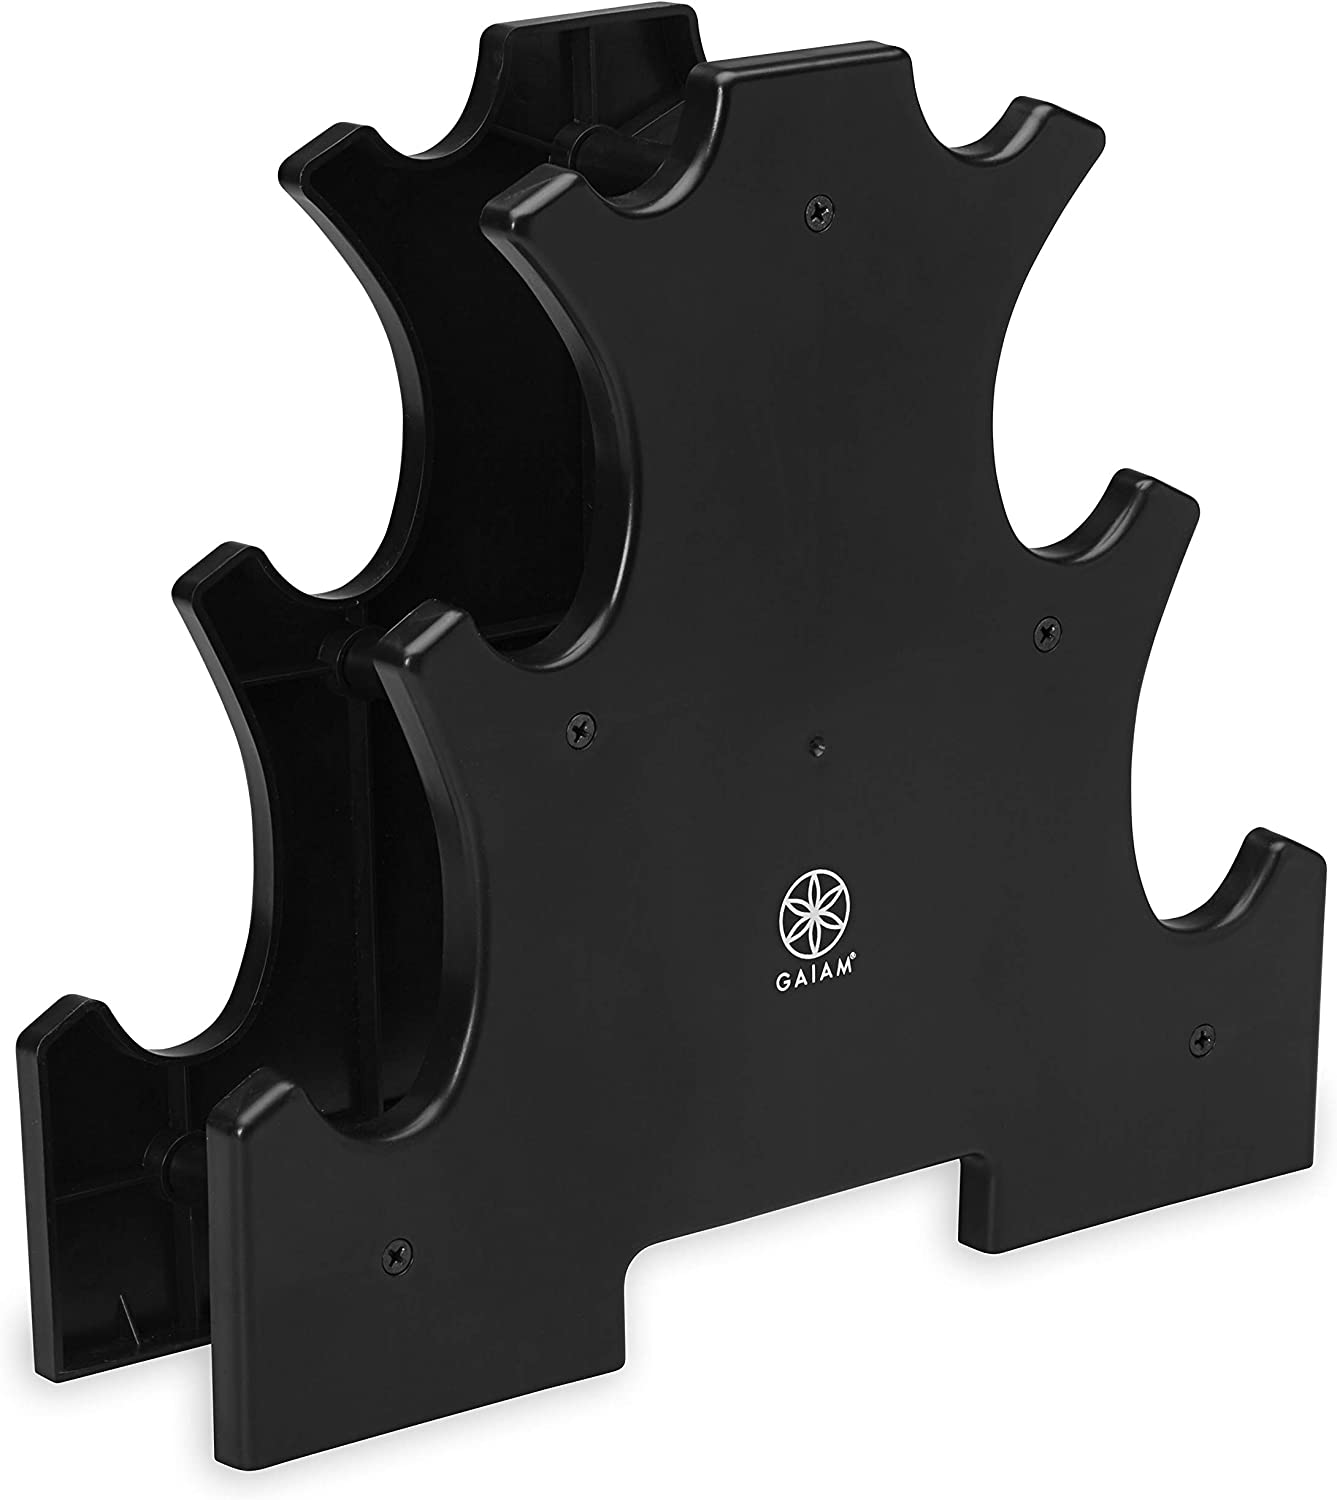 Gaiam Dumbbell Rack - Hand Weight Set Tree - Designed to Hold Neoprene Dumbbells - One Pair Each (3lb, 5lb, 8lb) (Weights Not Included)